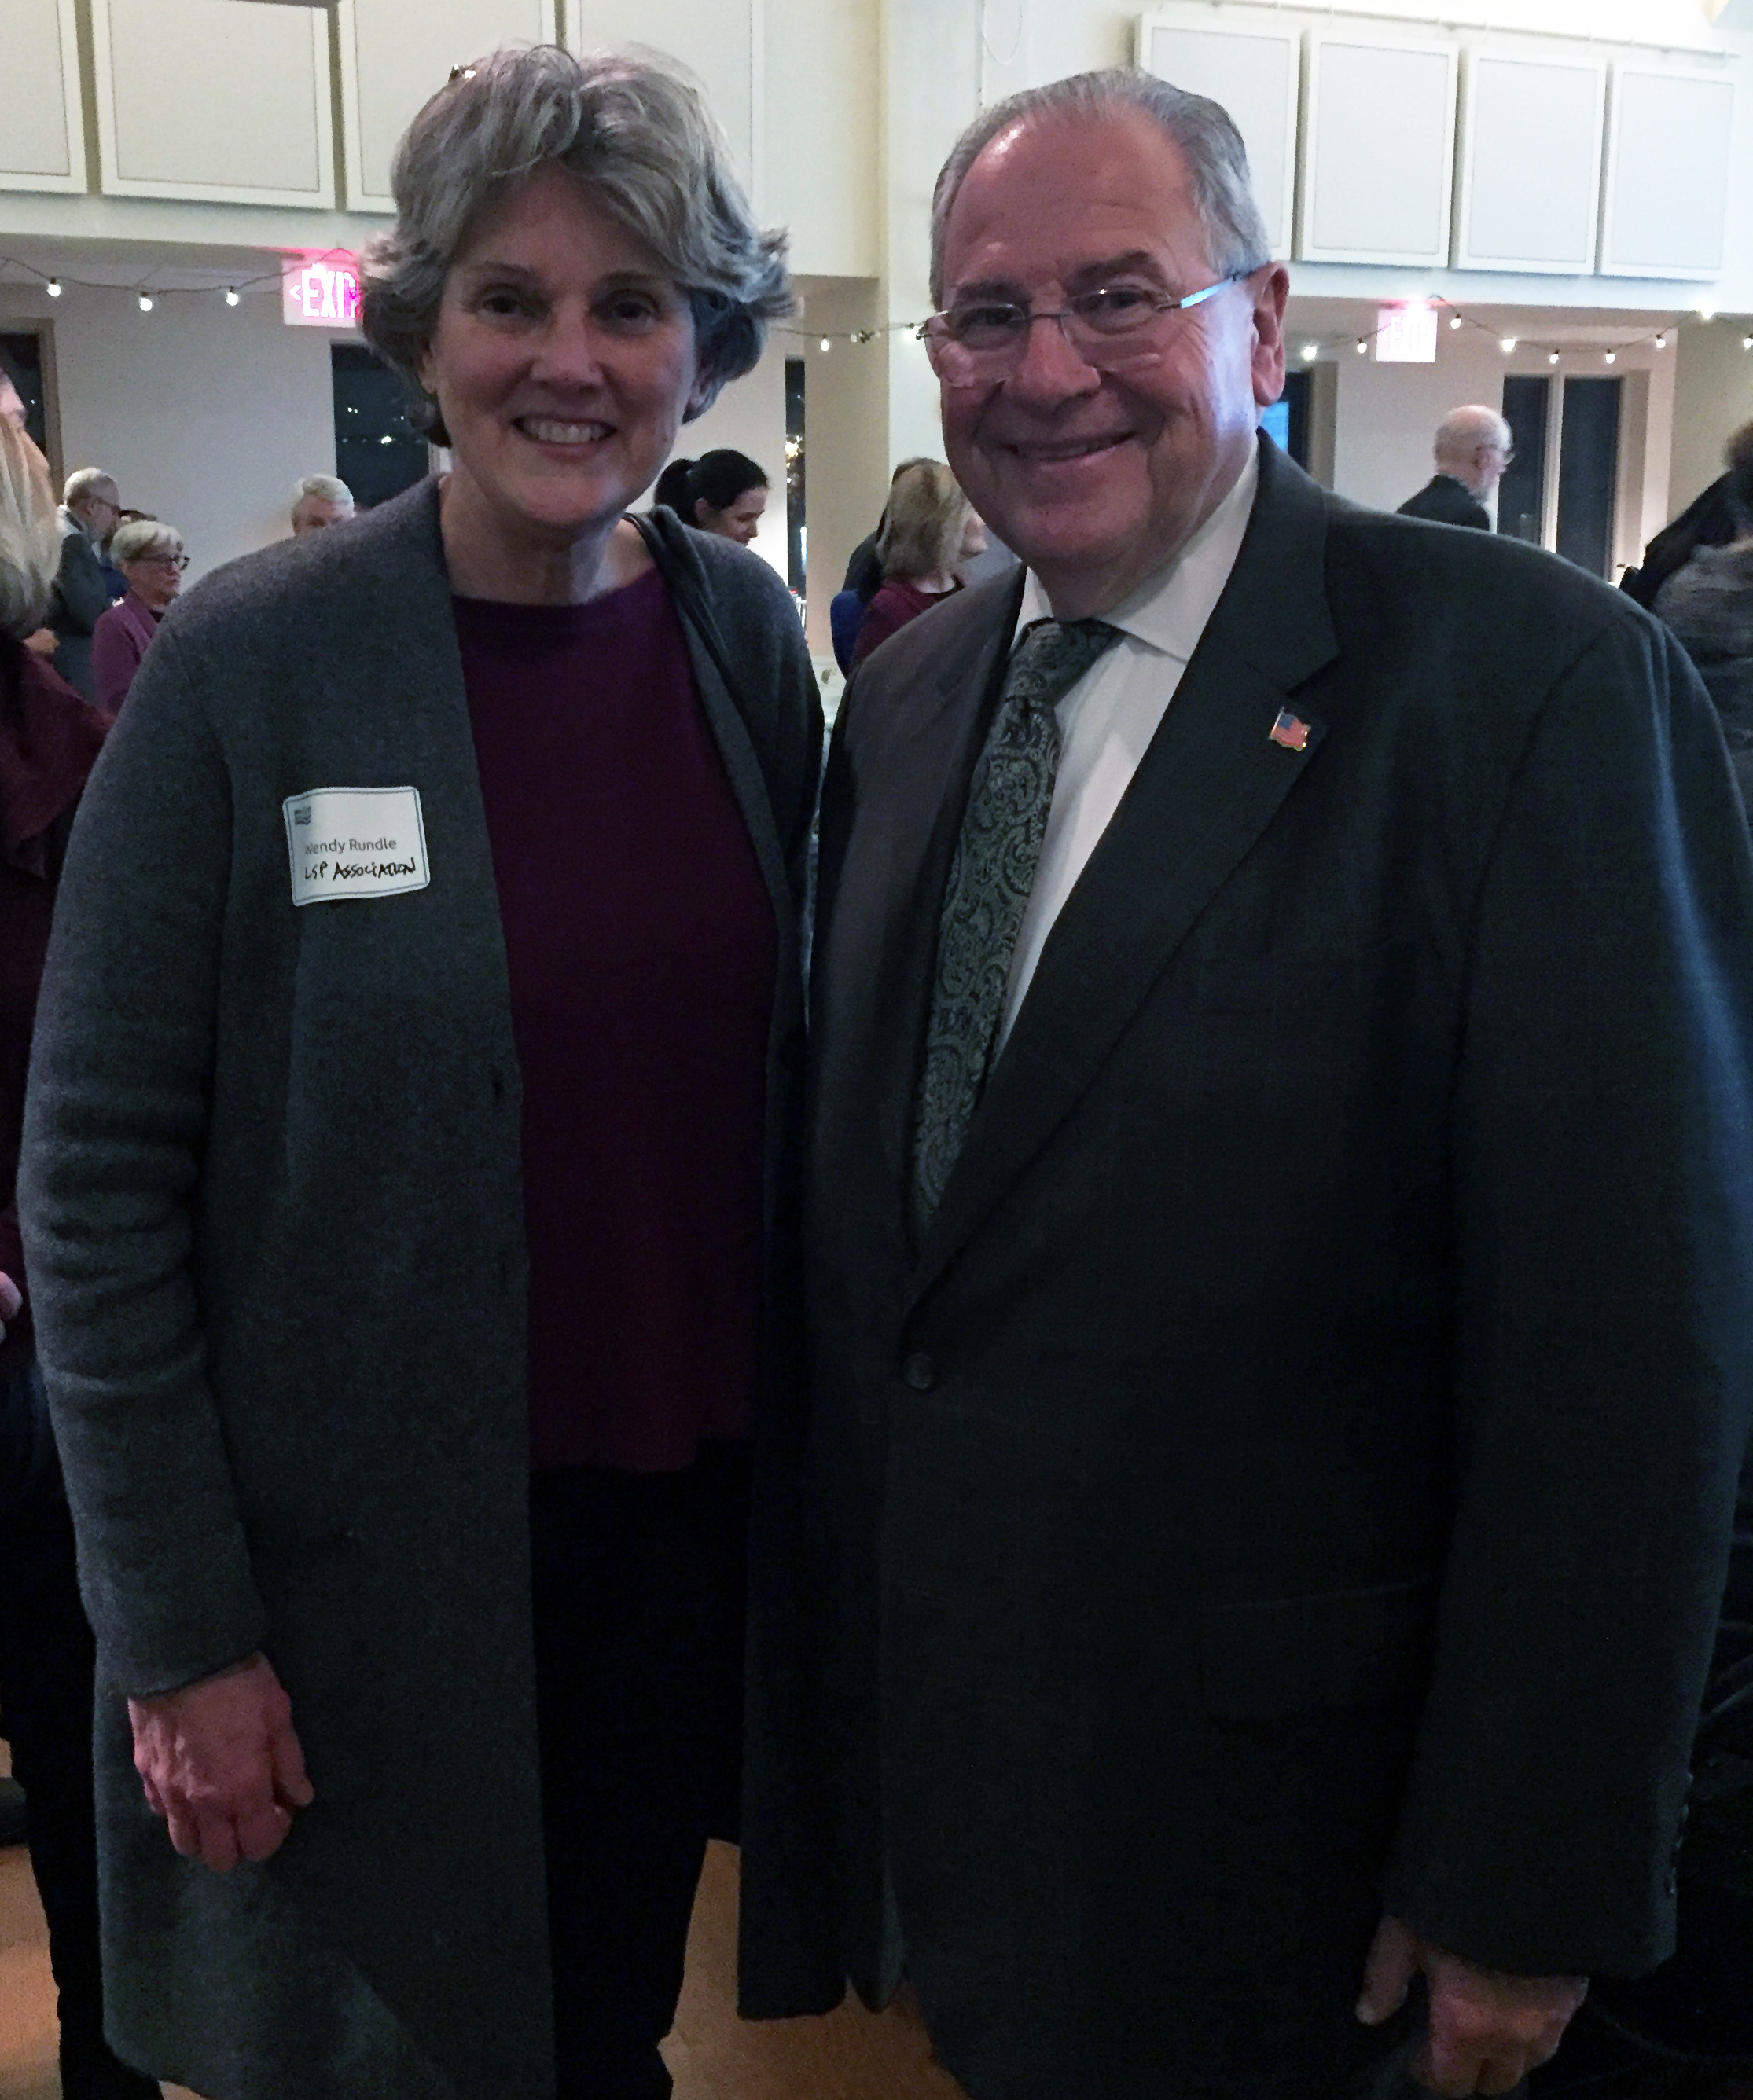 Speaker DeLeo, and Wendy Rundle, right after she mentioned the LSPA's S.594 to require insurance for remediation of residential home heating oil releases.